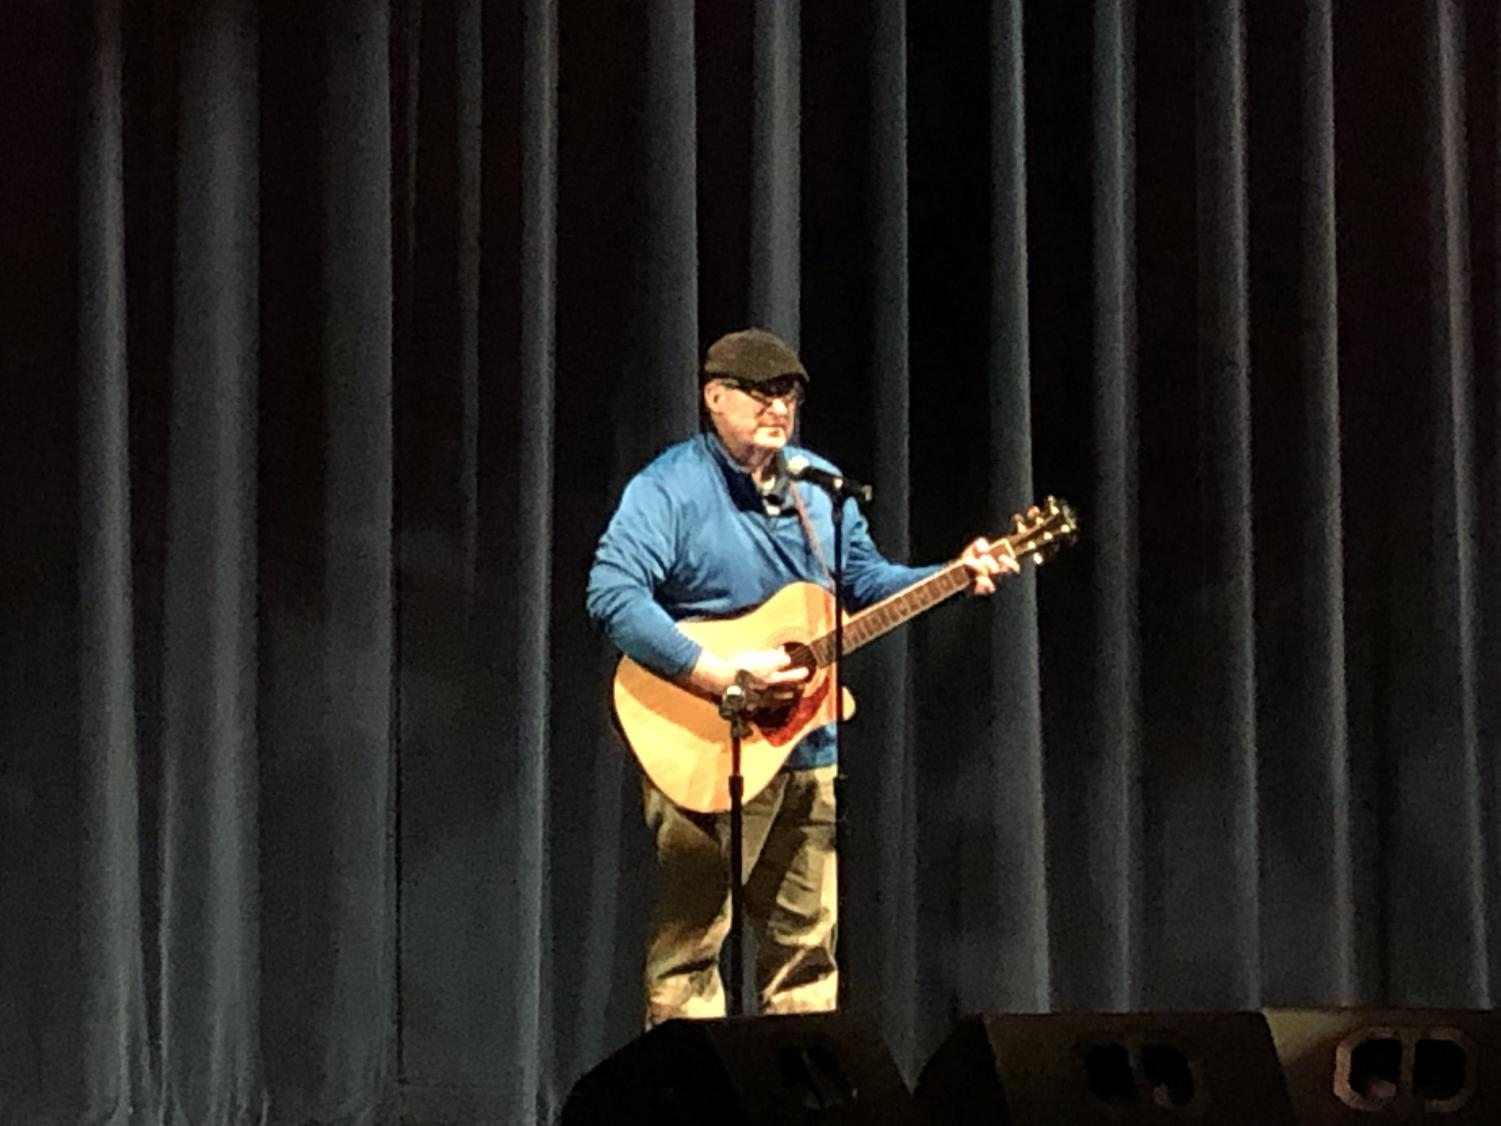 Mr. Jim Dorman plays a cover song at Open Mic held in the Abington Middle-High School Auditorium on May 8, 2019. Besides working in education at Abington High, Mr. Dorman is a freelance writer covering the entertainment industry on the South Shore.